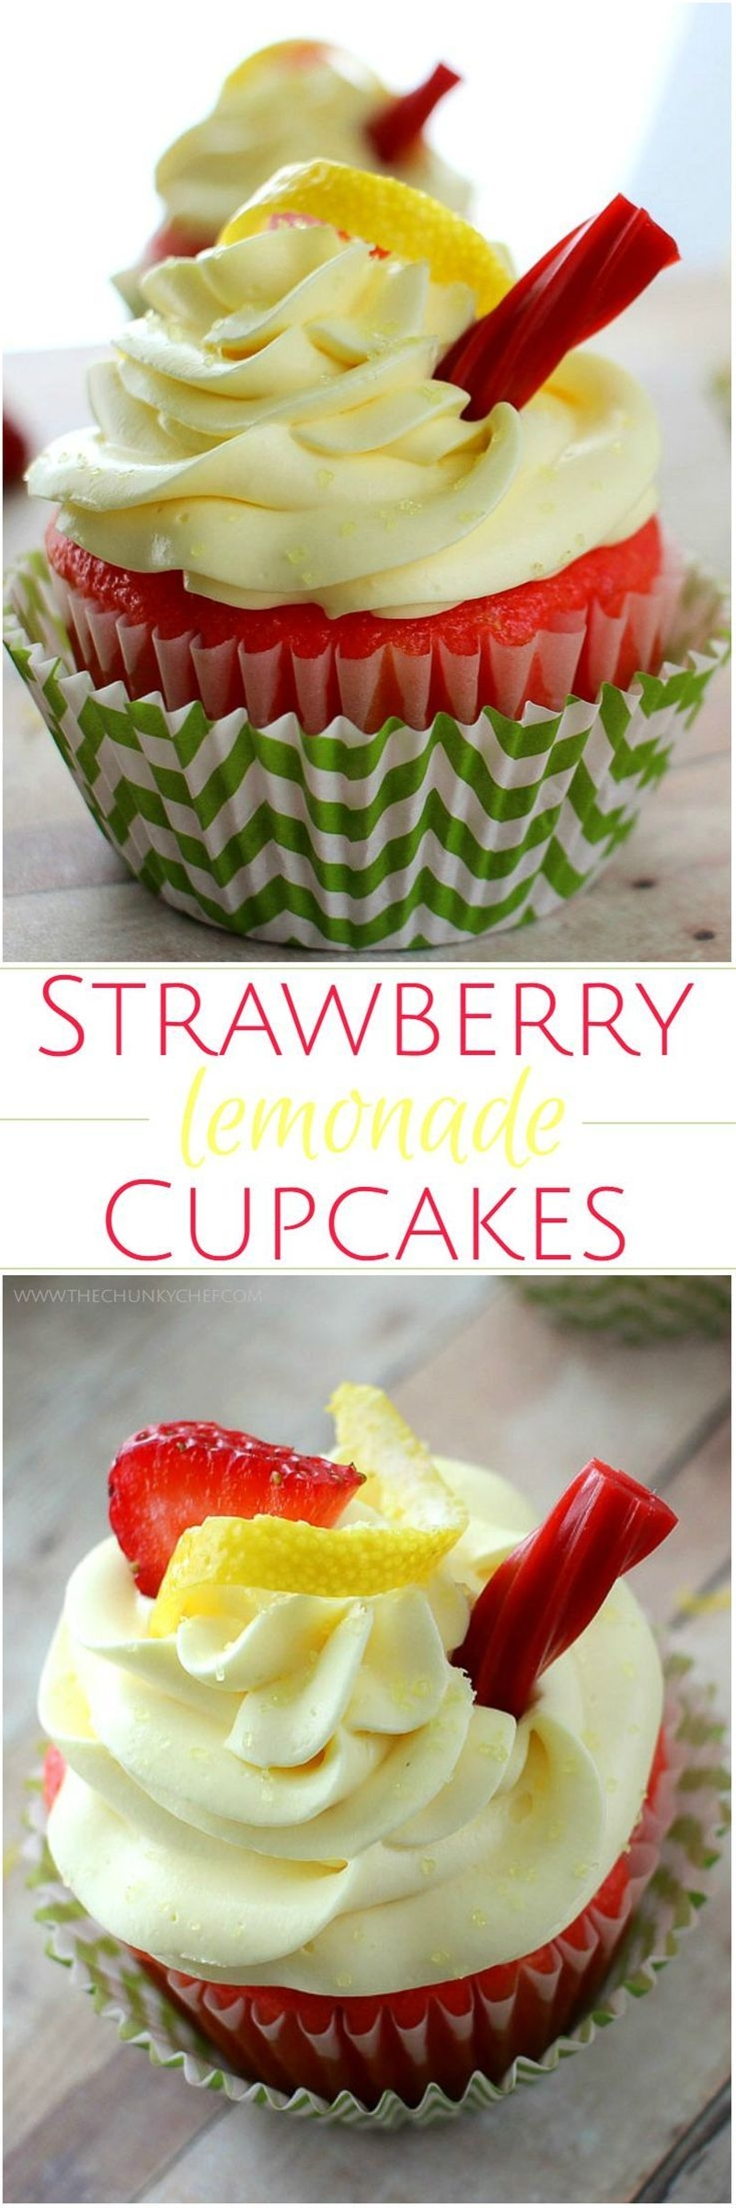 """You have to try these strawberry lemonade cupcakes! It's like taking a bite out of summer :)\n\n INGREDIENTS\n Box of strawberry cake mix (plus milk, eggs and oil, as indicated on the box)\n 1/2 packet Jell-O vanilla pudding mix\n 2 tsp strawberry Kool-Aid drink mix\n\n FOR THE FROSTING:\n 12oz. Philadelphia Cream Cheese, softened (1 1/2 packages)\n 1 cup powdered sugar\n 2 Tbsp heavy cream\n 1 packet lemonade Kool-Aid drink mix (you won't be using the whole packet, start with about 1/2 tsp and adjust from there after tasting)\n Yellow food coloring, optional\n 16 oz. Cool Whip frozen topping, thawed\n Fresh strawberries, sliced, for decoration\n Lemon rind, for decoration\n Strawberry licorice twist, cut into 3"""" sections, for decoration"""